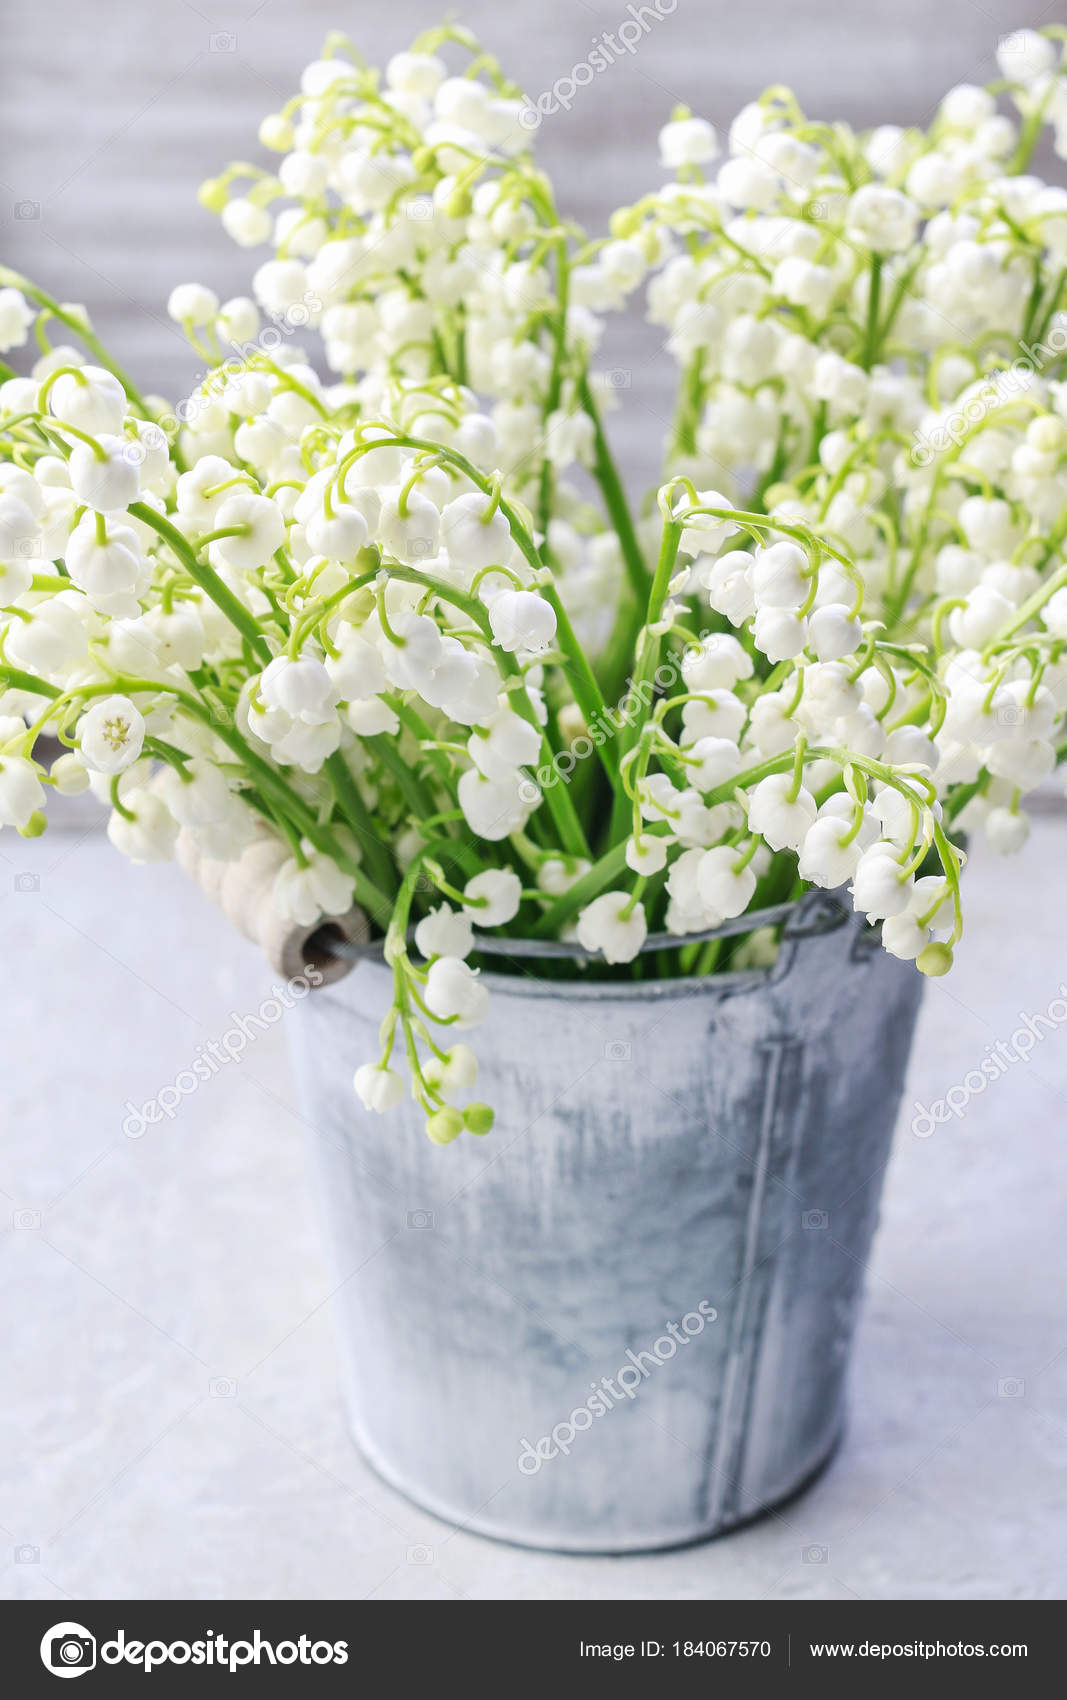 Lilly of the valley flowers in silver bucket stock photo lilly of the valley flowers in silver bucket stock photo izmirmasajfo